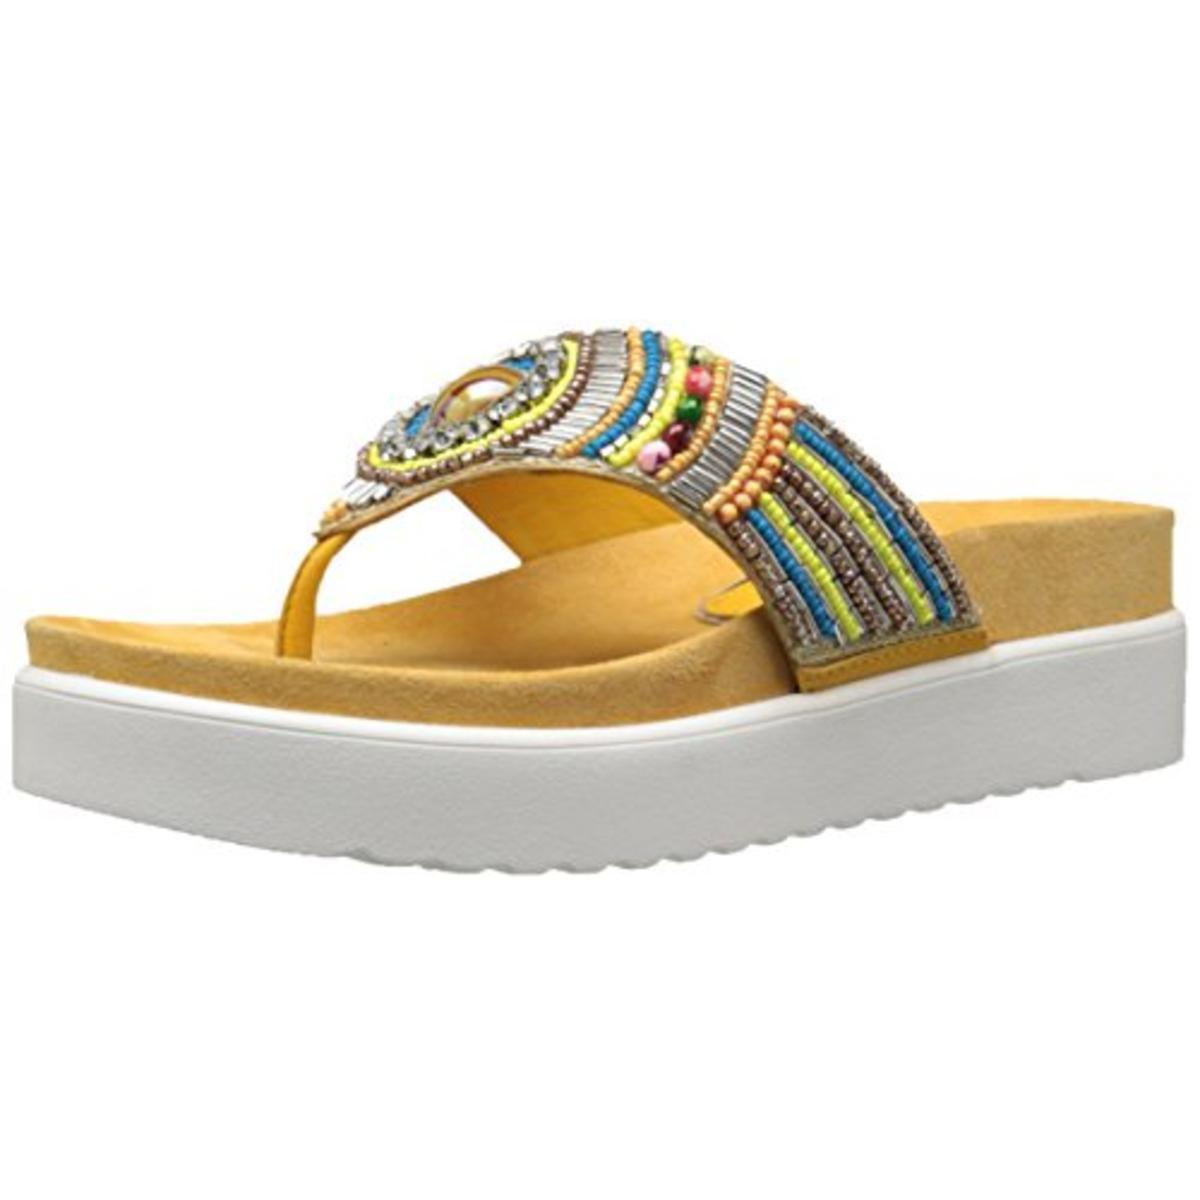 J. Renee Womens Fantina Leather Embelleshed Thong Sandals by J. Renee